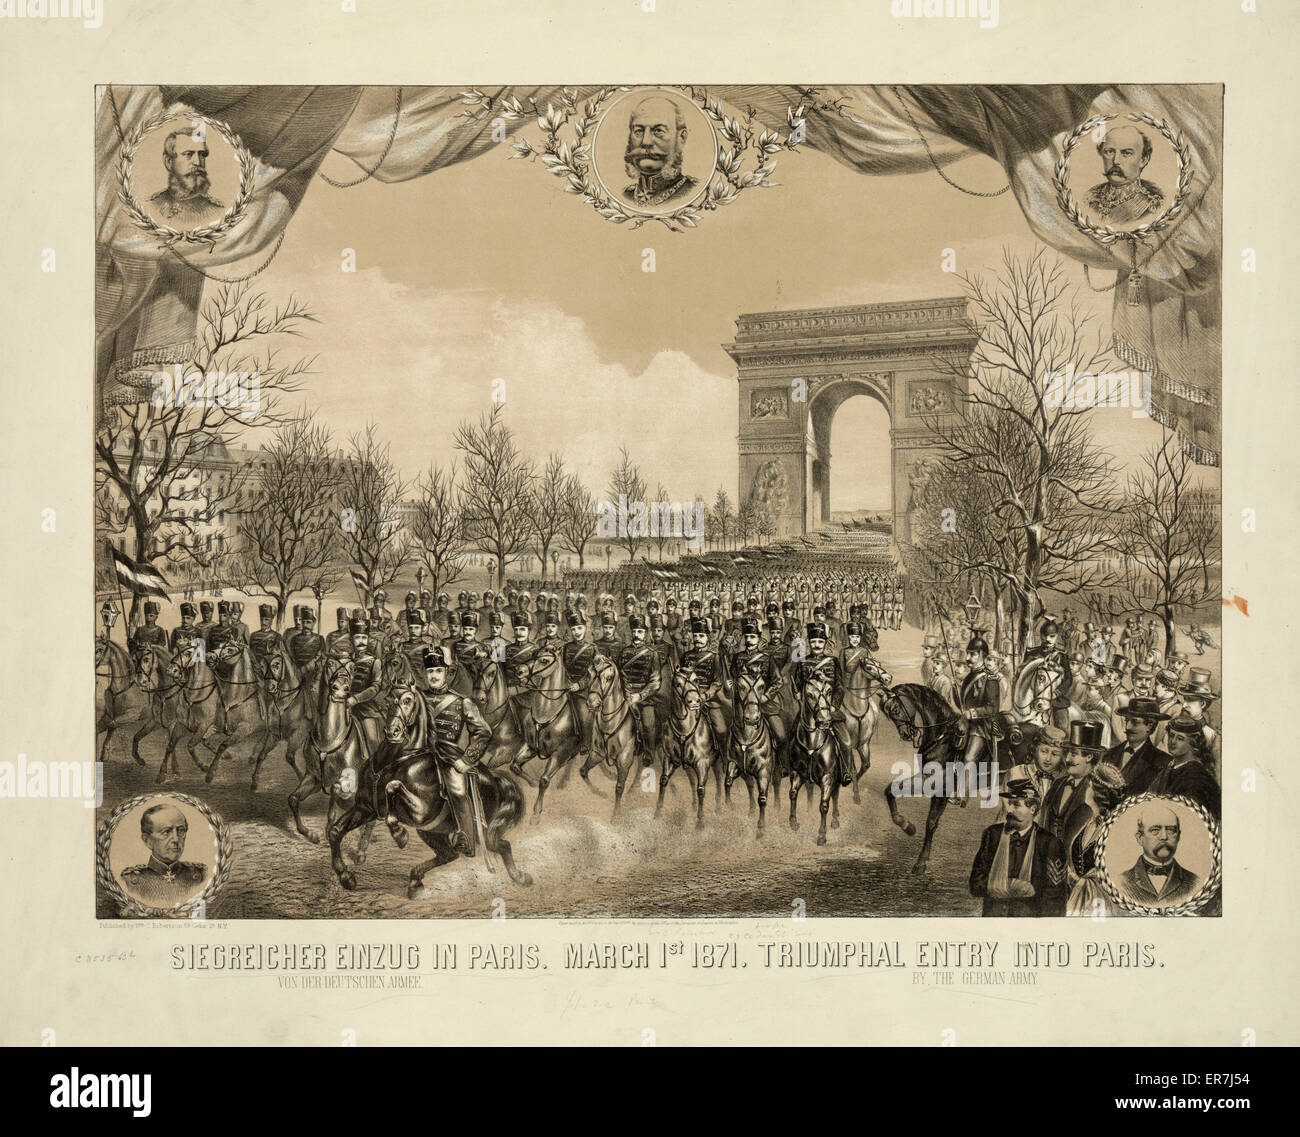 Triumphal entry into Paris., by the German army. Date c1871. - Stock Image